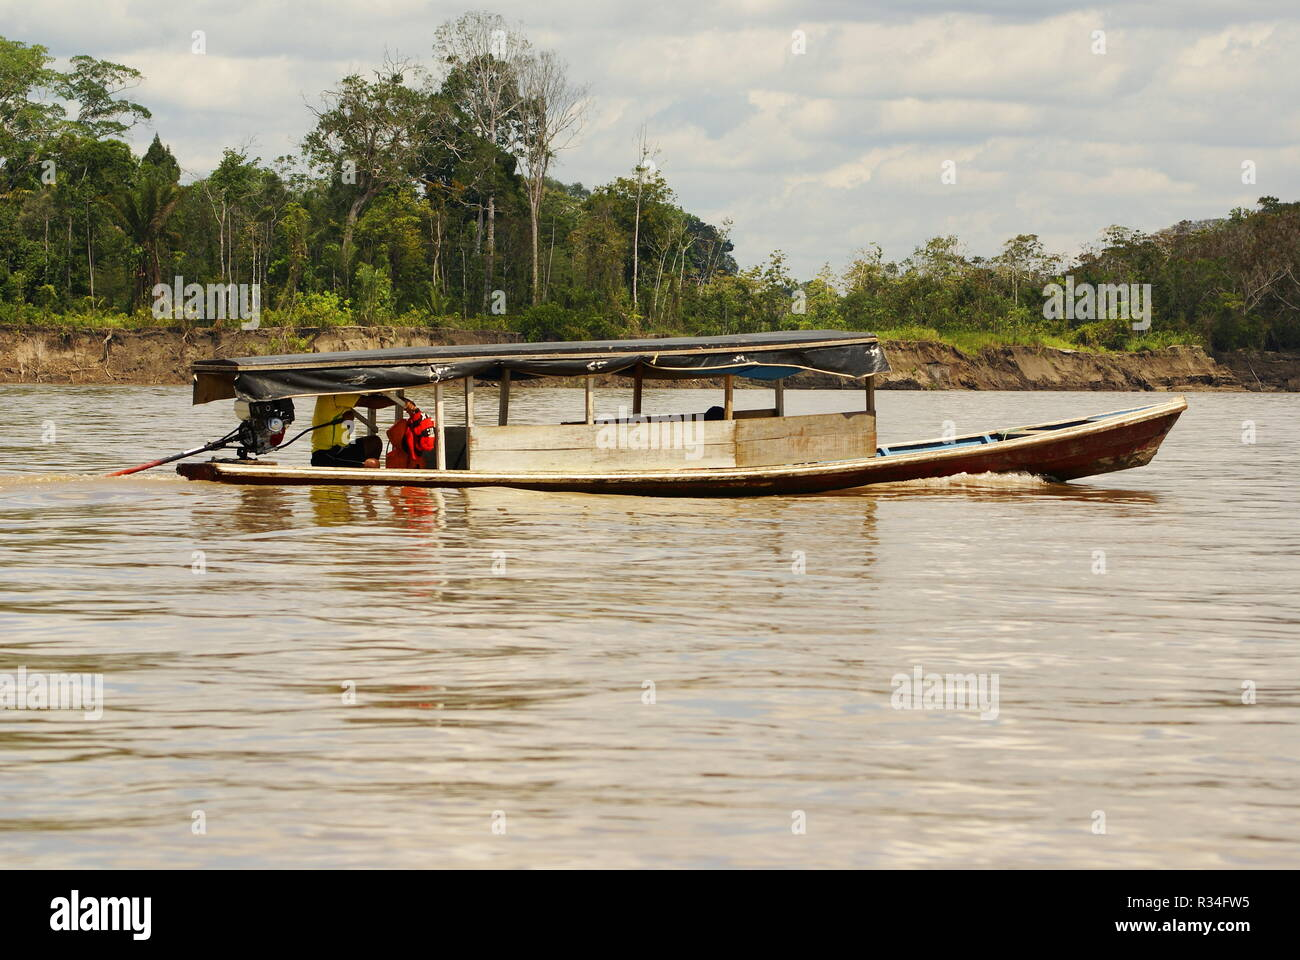 boating on the river,peru amazon - Stock Image